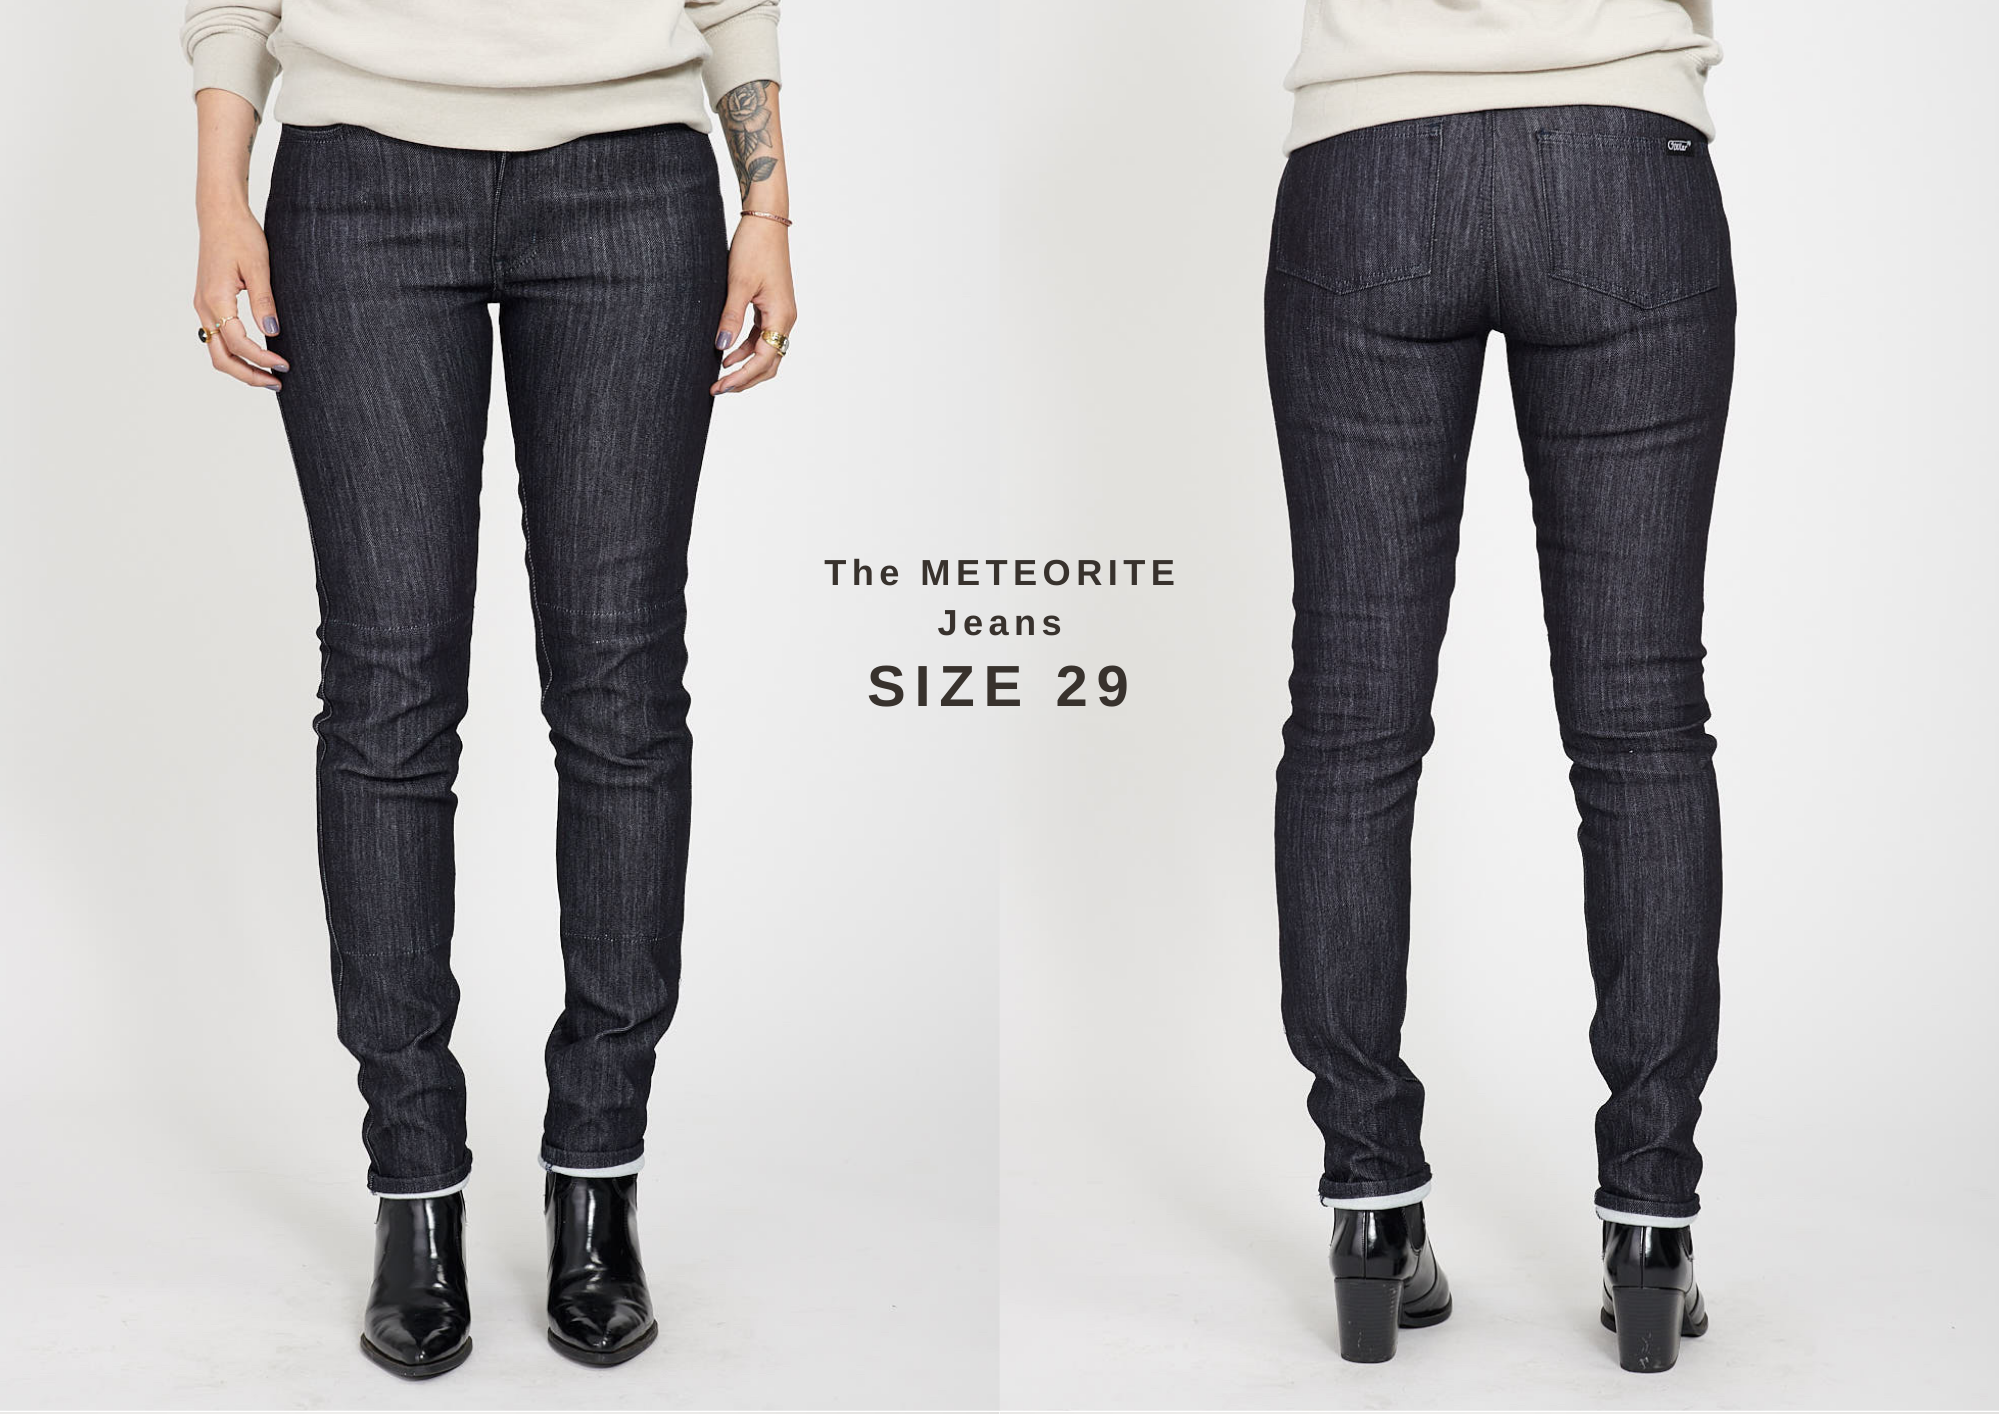 The METEORITE Jeans in size 29